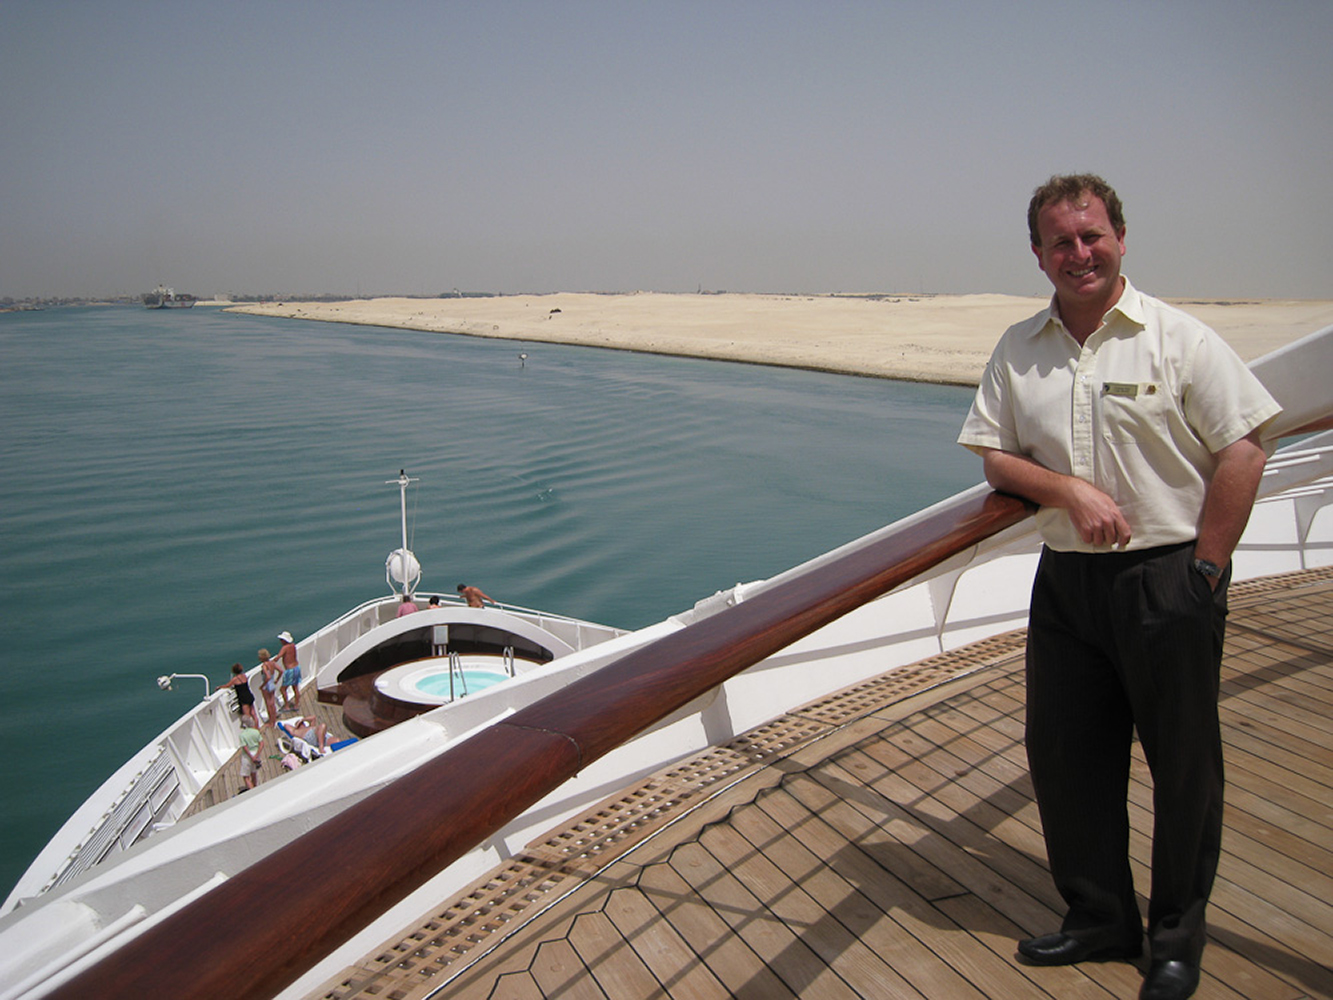 Suez Canal, Egypt. Cruising through the desert on the highway to India